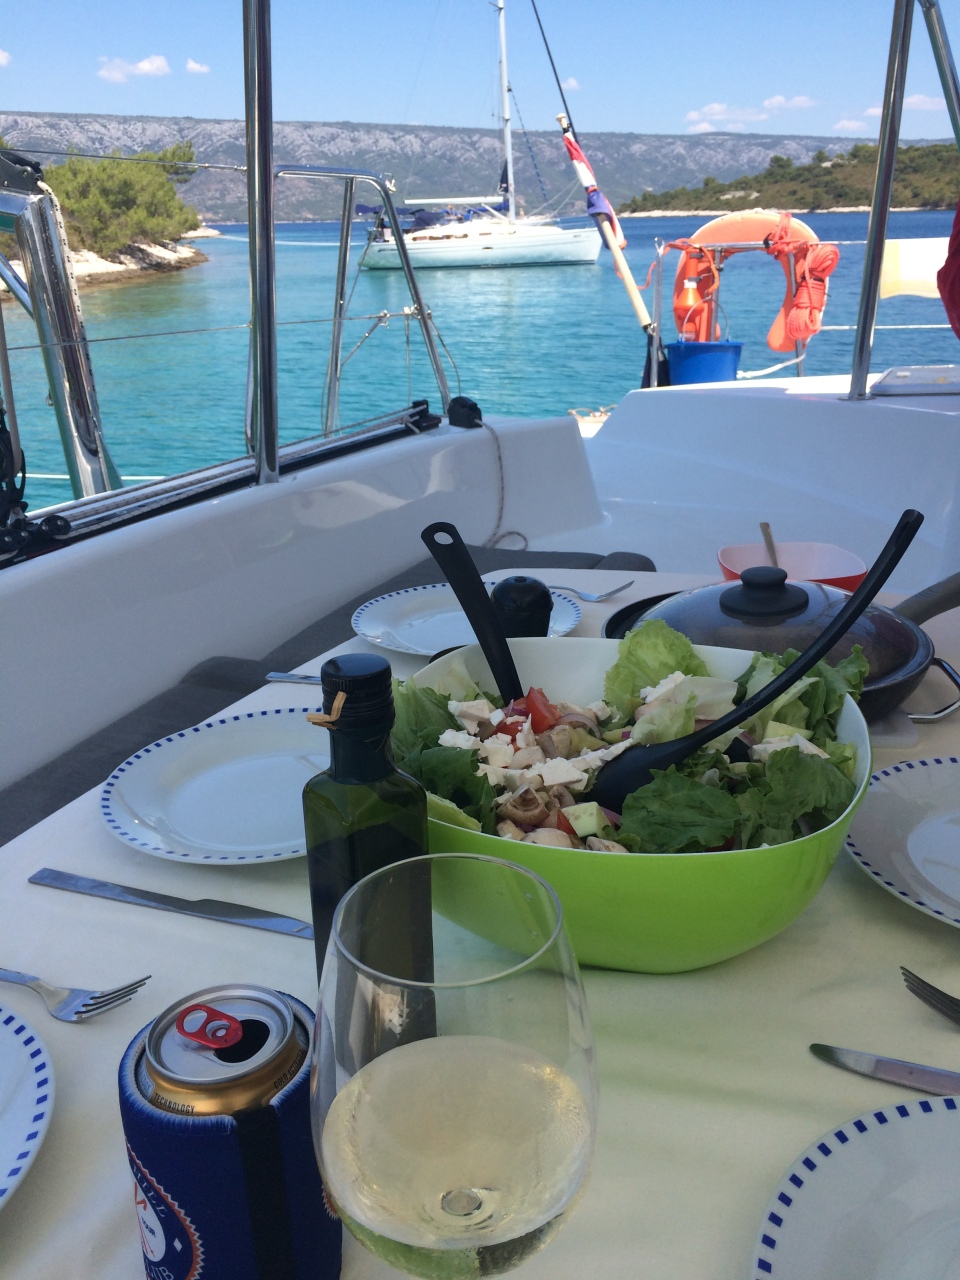 One of our lunches on board 'MuMu'